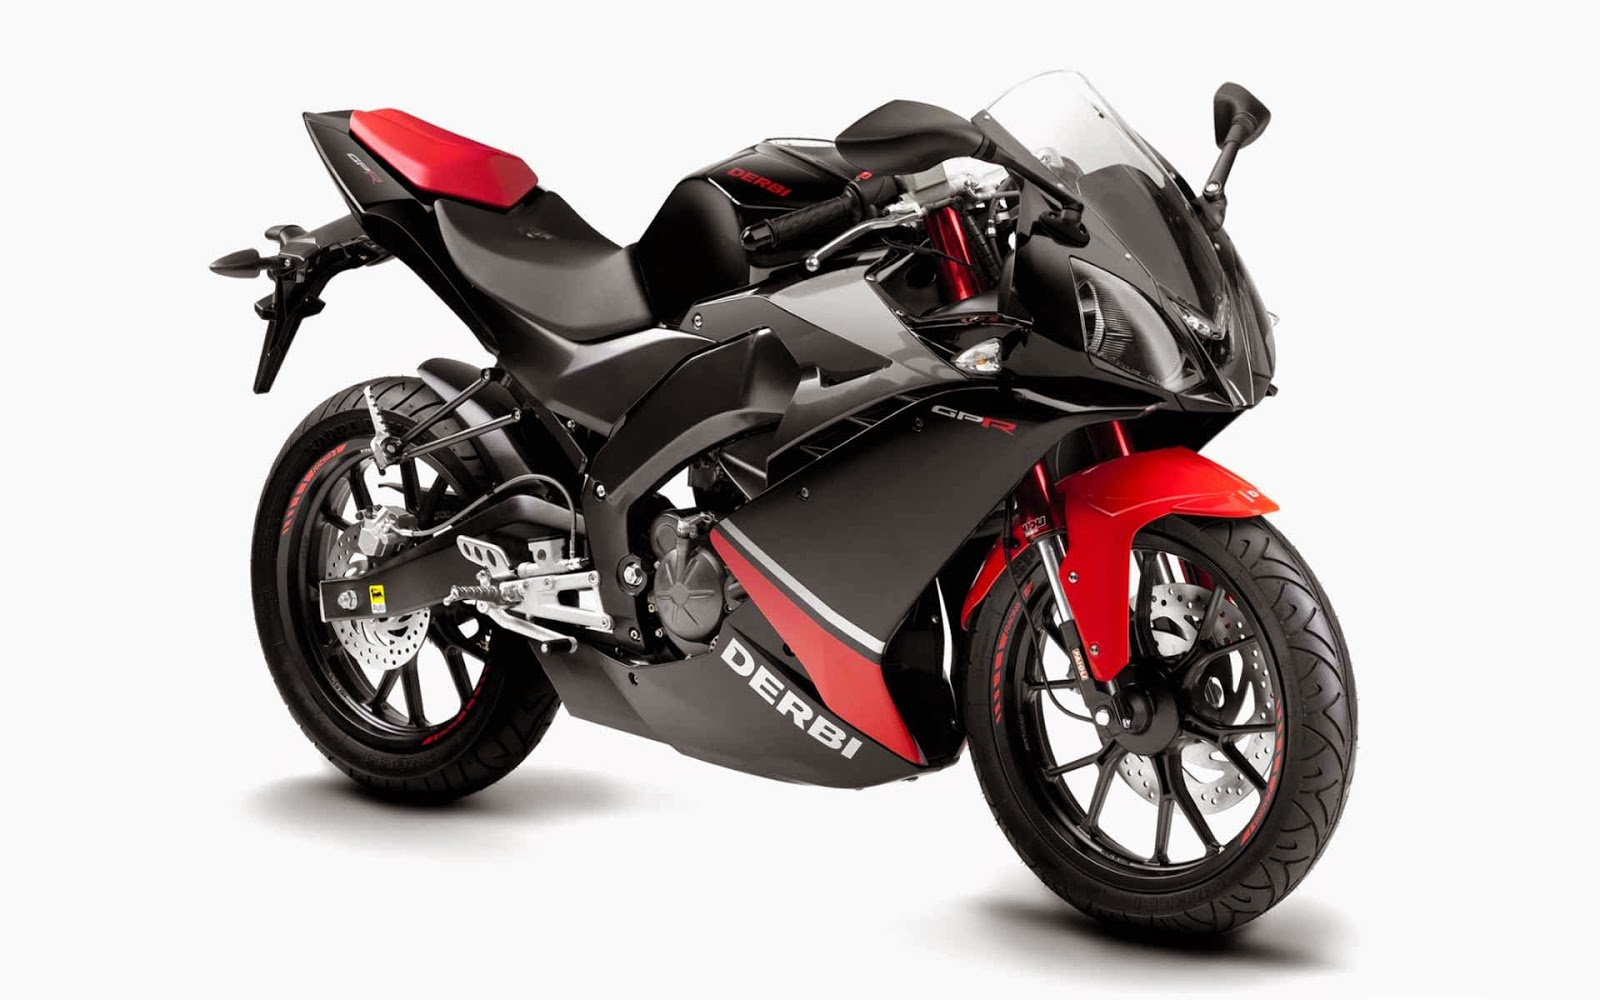 Wallpaper download cars and bikes free - Sports Bike Hd Wallpapers Free Download For Desktop Mobile Laptop 1920x1200